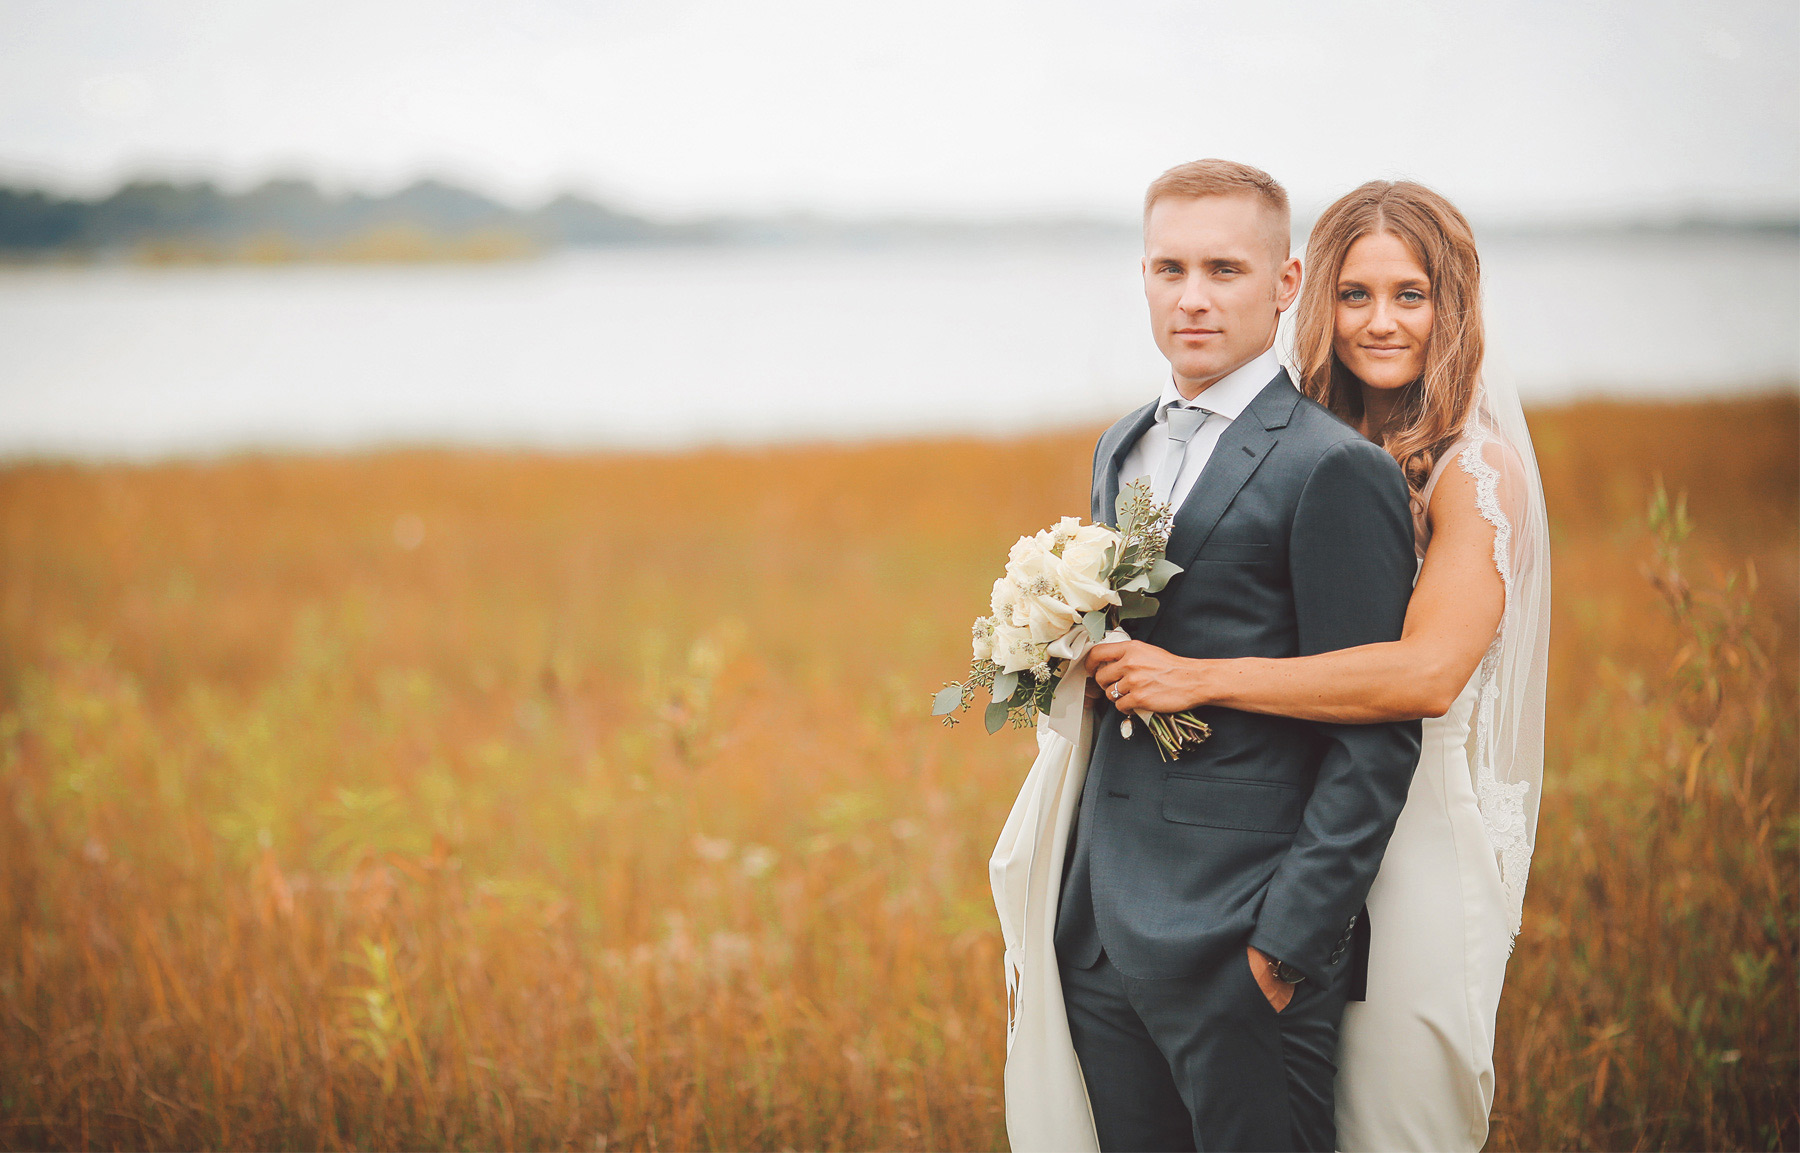 13-Dellwood-Minnesota-Wedding-Photographer-by-Andrew-Vick-Photography-Summer-Country-Club-First-Meeting-Look-Bride-Groom-Embrace-White-Bear-Lake-Vintage-Sarah-and-Landon.jpg